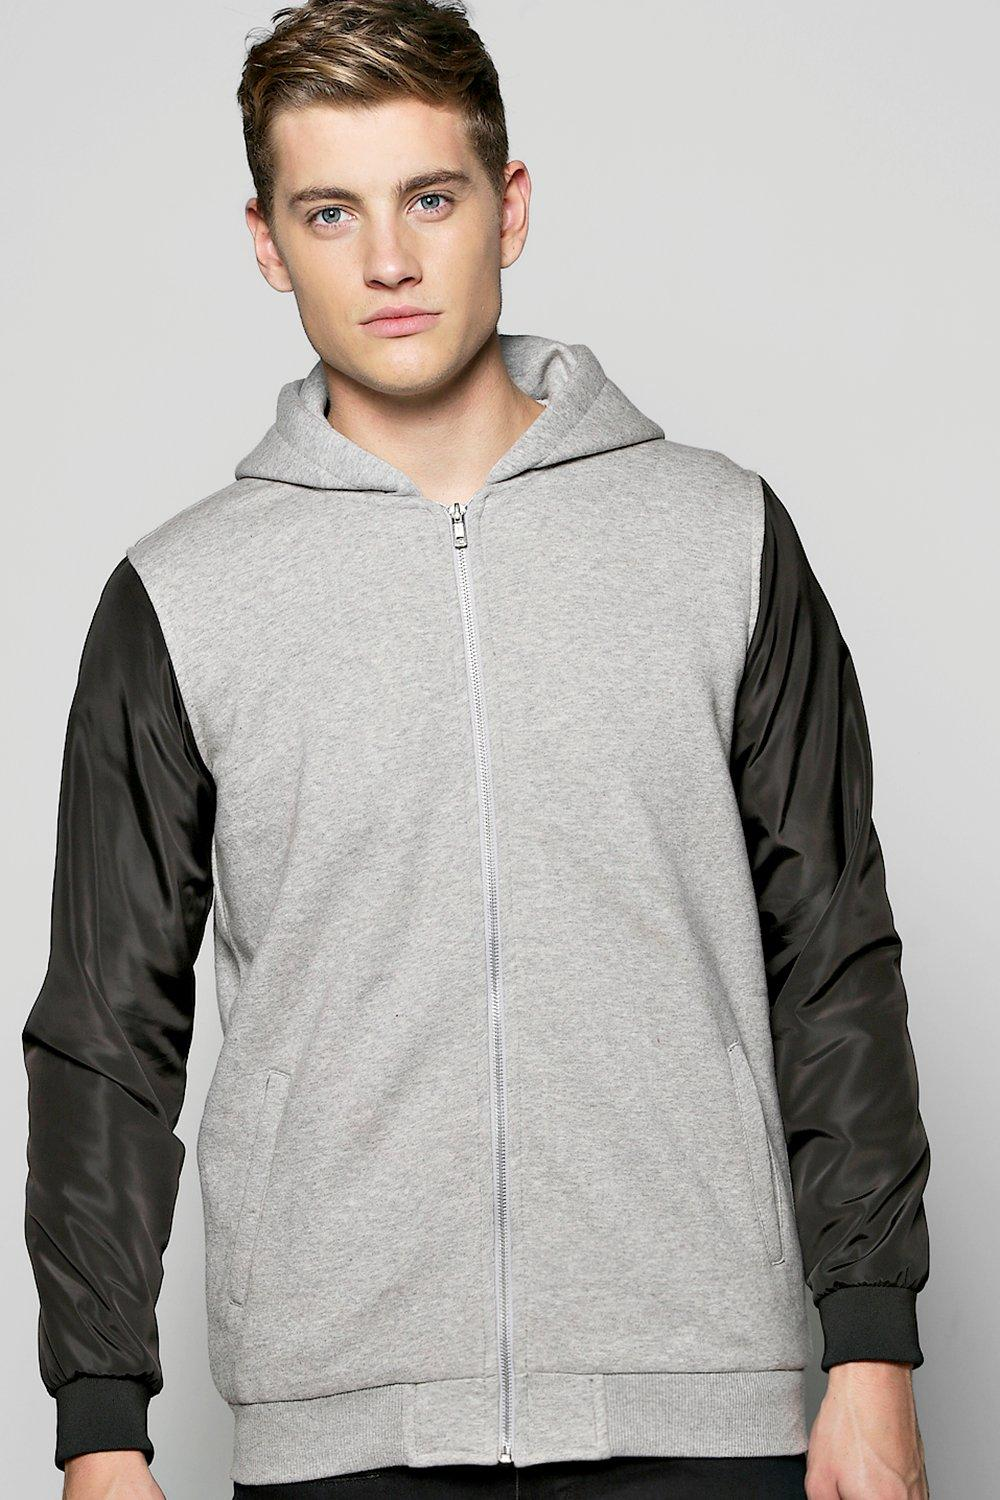 Jersey Lined MA1 Bomber Jacket with Nylon Sleeves